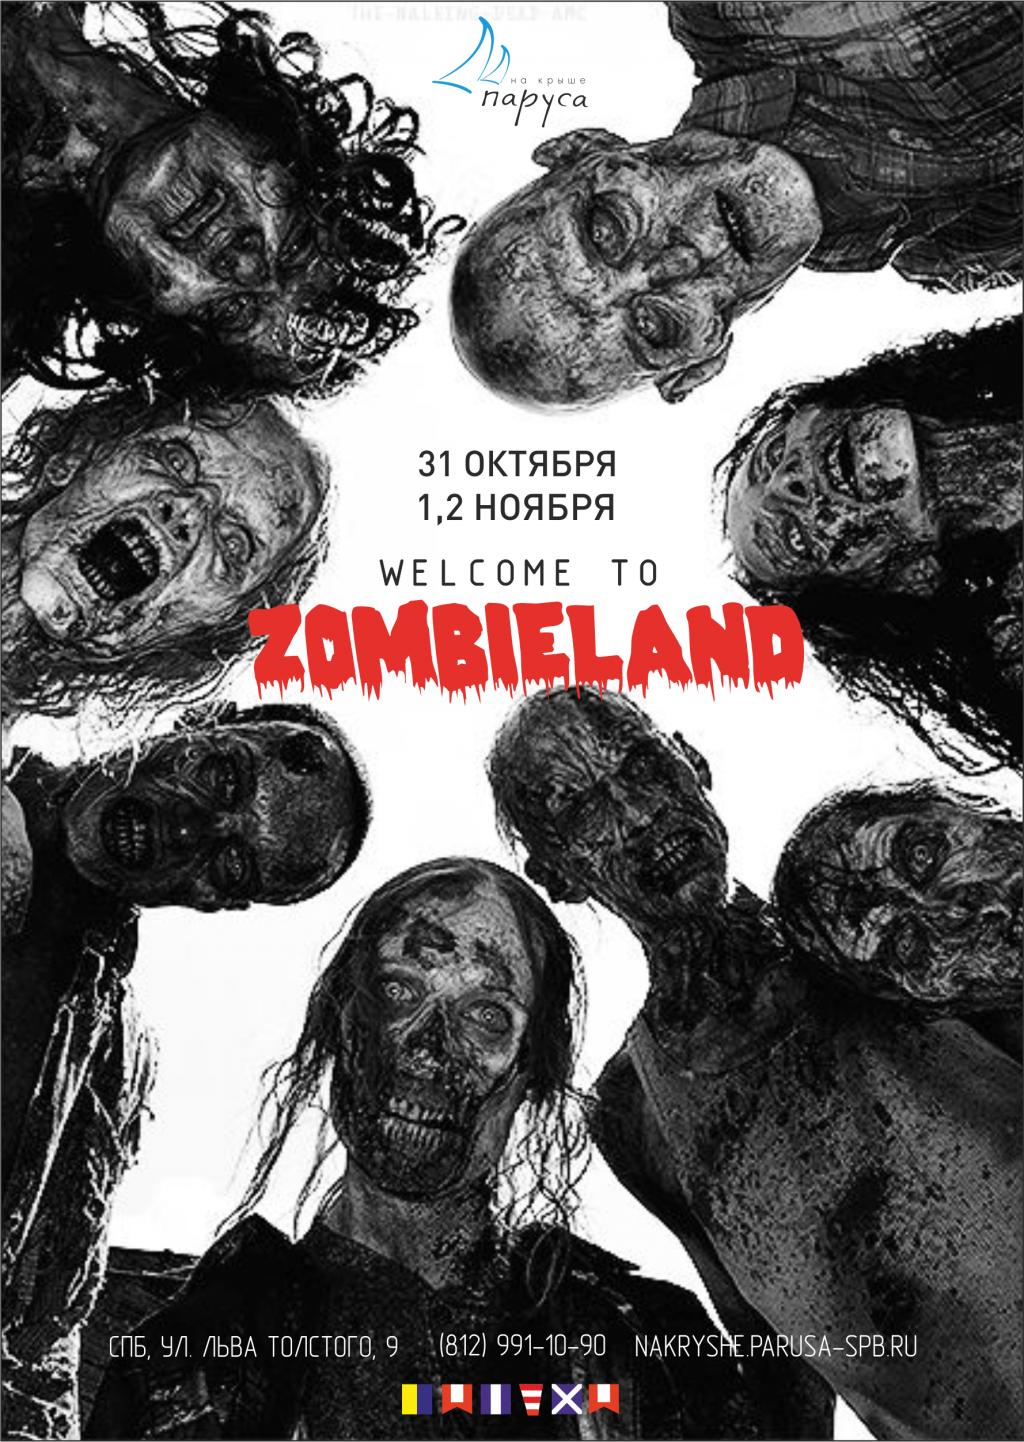 WELCOME TO THE ZOMBIELAND